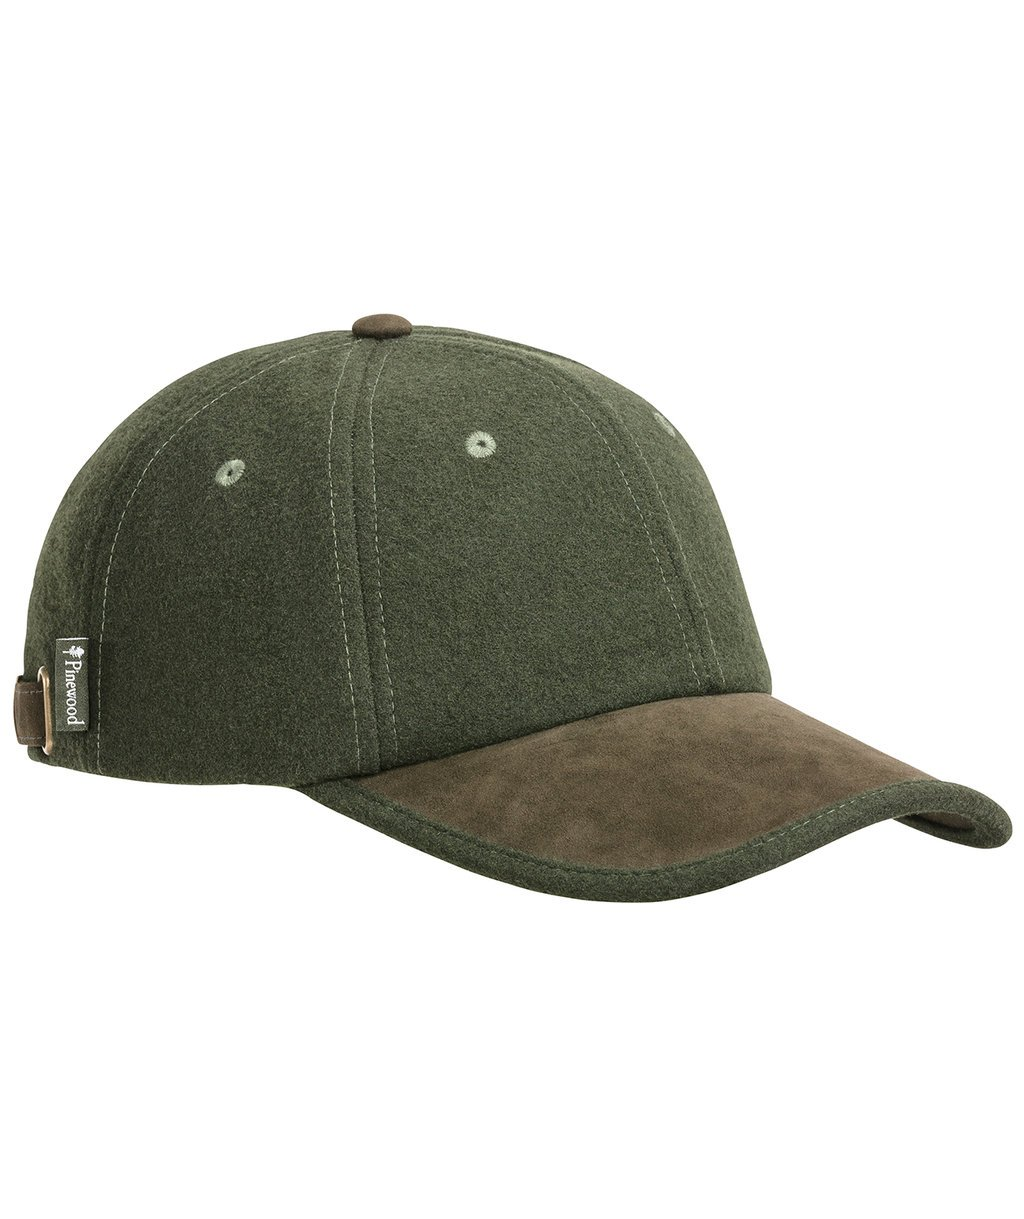 Pinewood Edmonton Exclusive cap, Mossgreen/Suede Brown